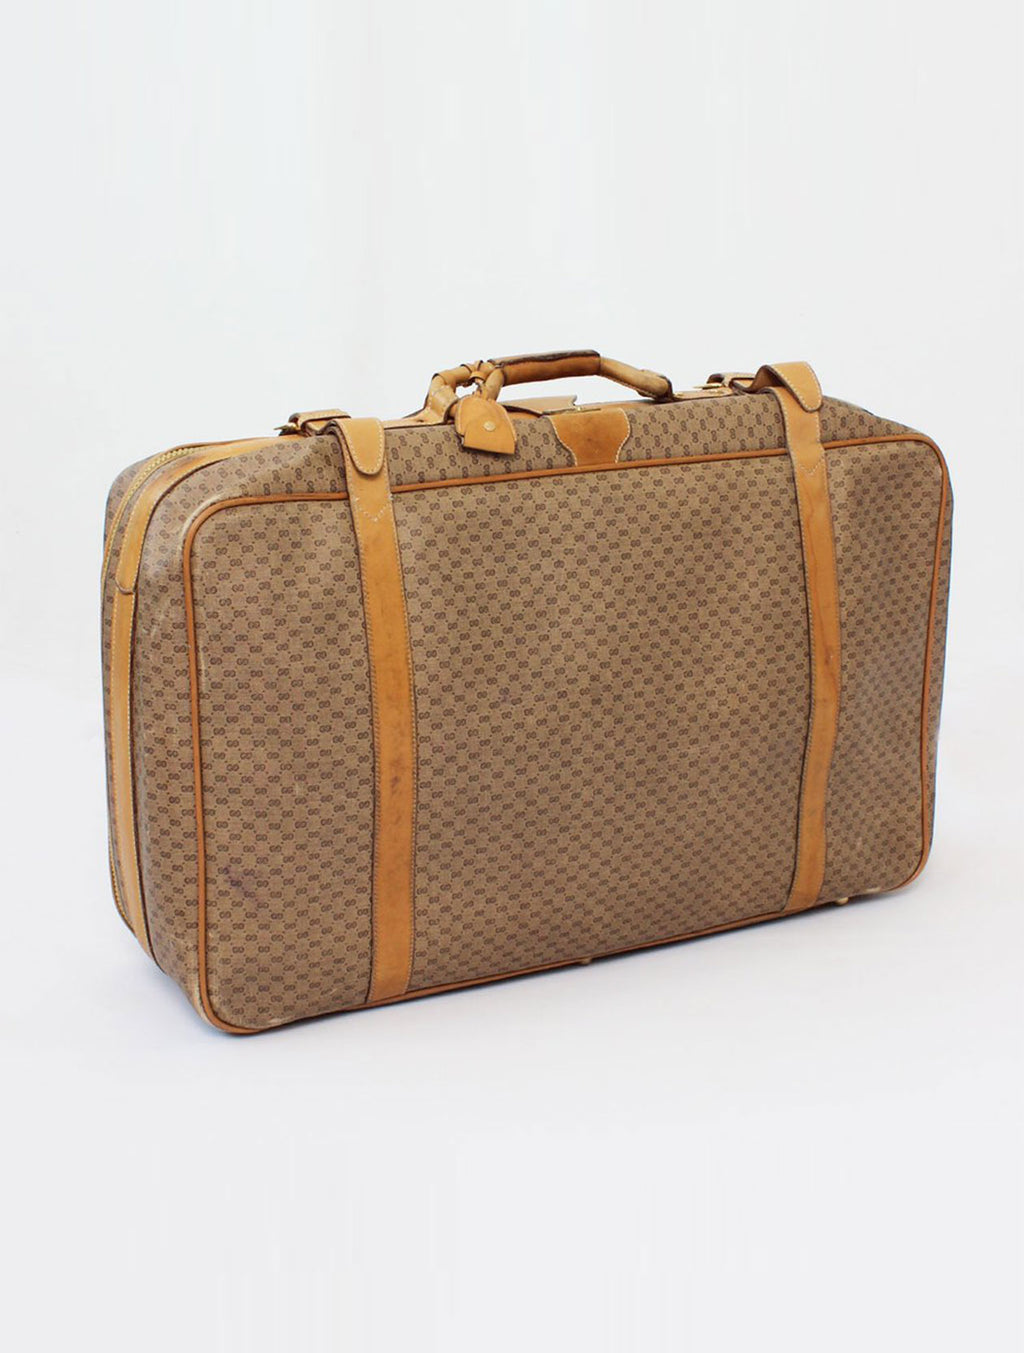 Gucci Large Travel Suitcase